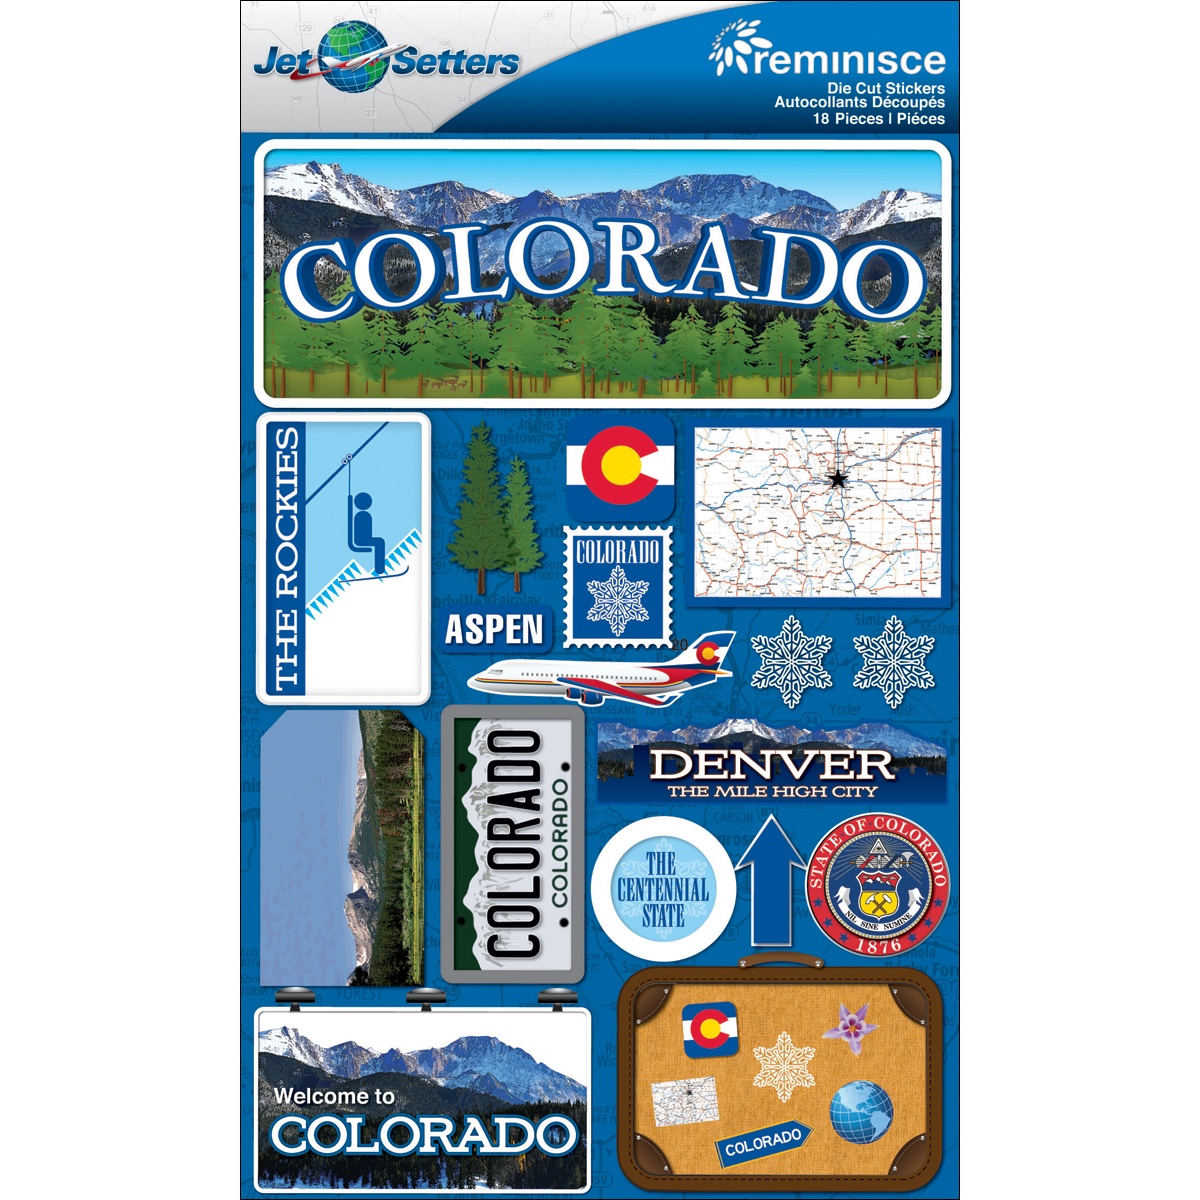 Colorado - Reminisce Jet Setters State Dimensional Stickers